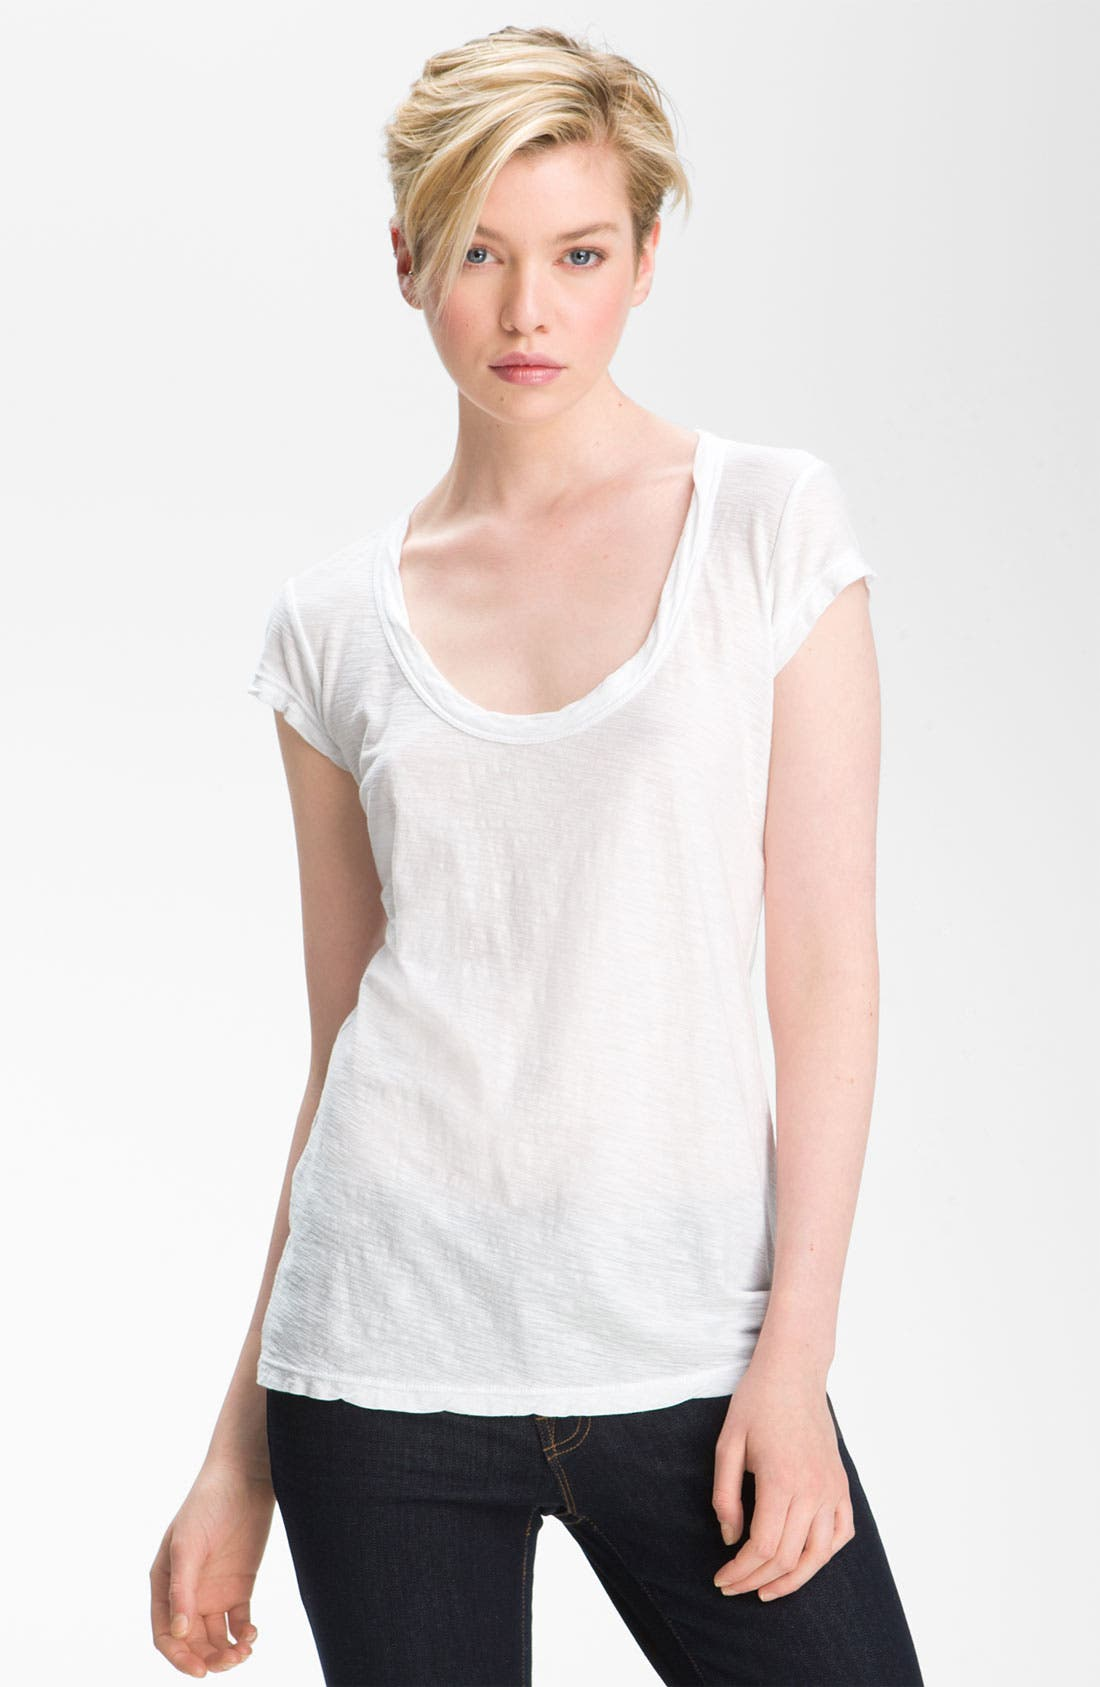 Alternate Image 1 Selected - James Perse Textured Scoop Neck Tee